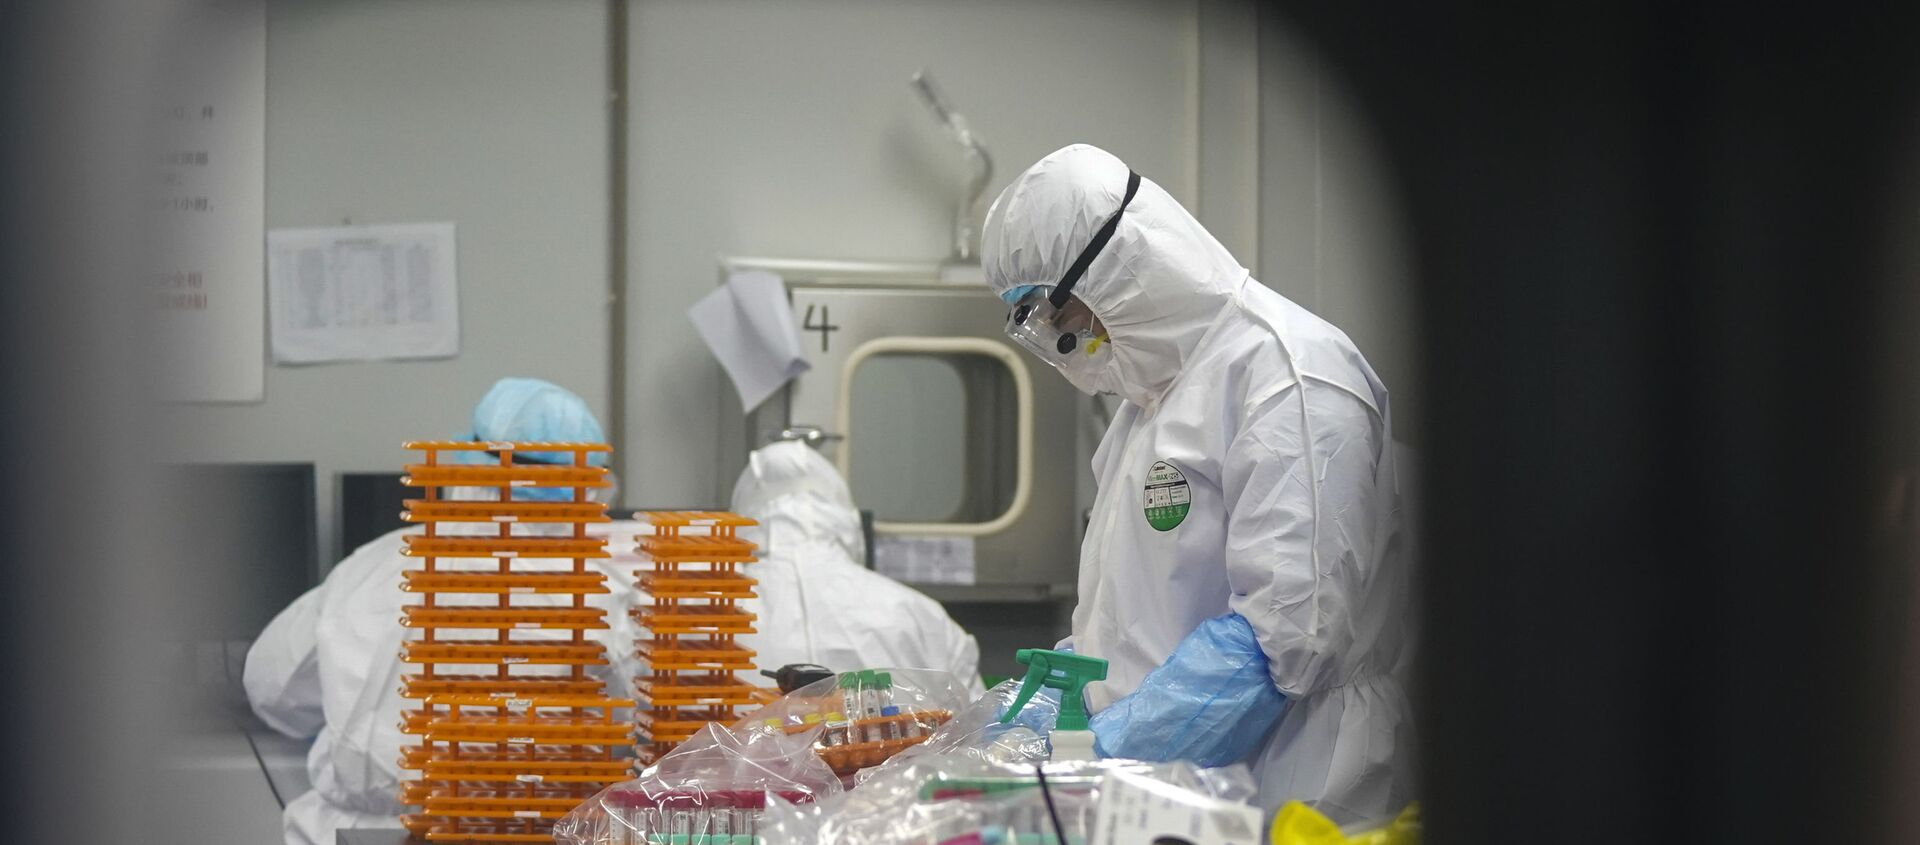 This Saturday, Feb. 22, 2020, photo released by Xinhua News Agency, shows medical workers in protective suits at a coronavirus detection lab in Wuhan in central China's Hubei Province. The fresh national figures for the disease that emerged in China in December came as the number of viral infections soared mostly in and around the southeastern city of Daegu, where they were linked to a local church and a hospital. - Sputnik International, 1920